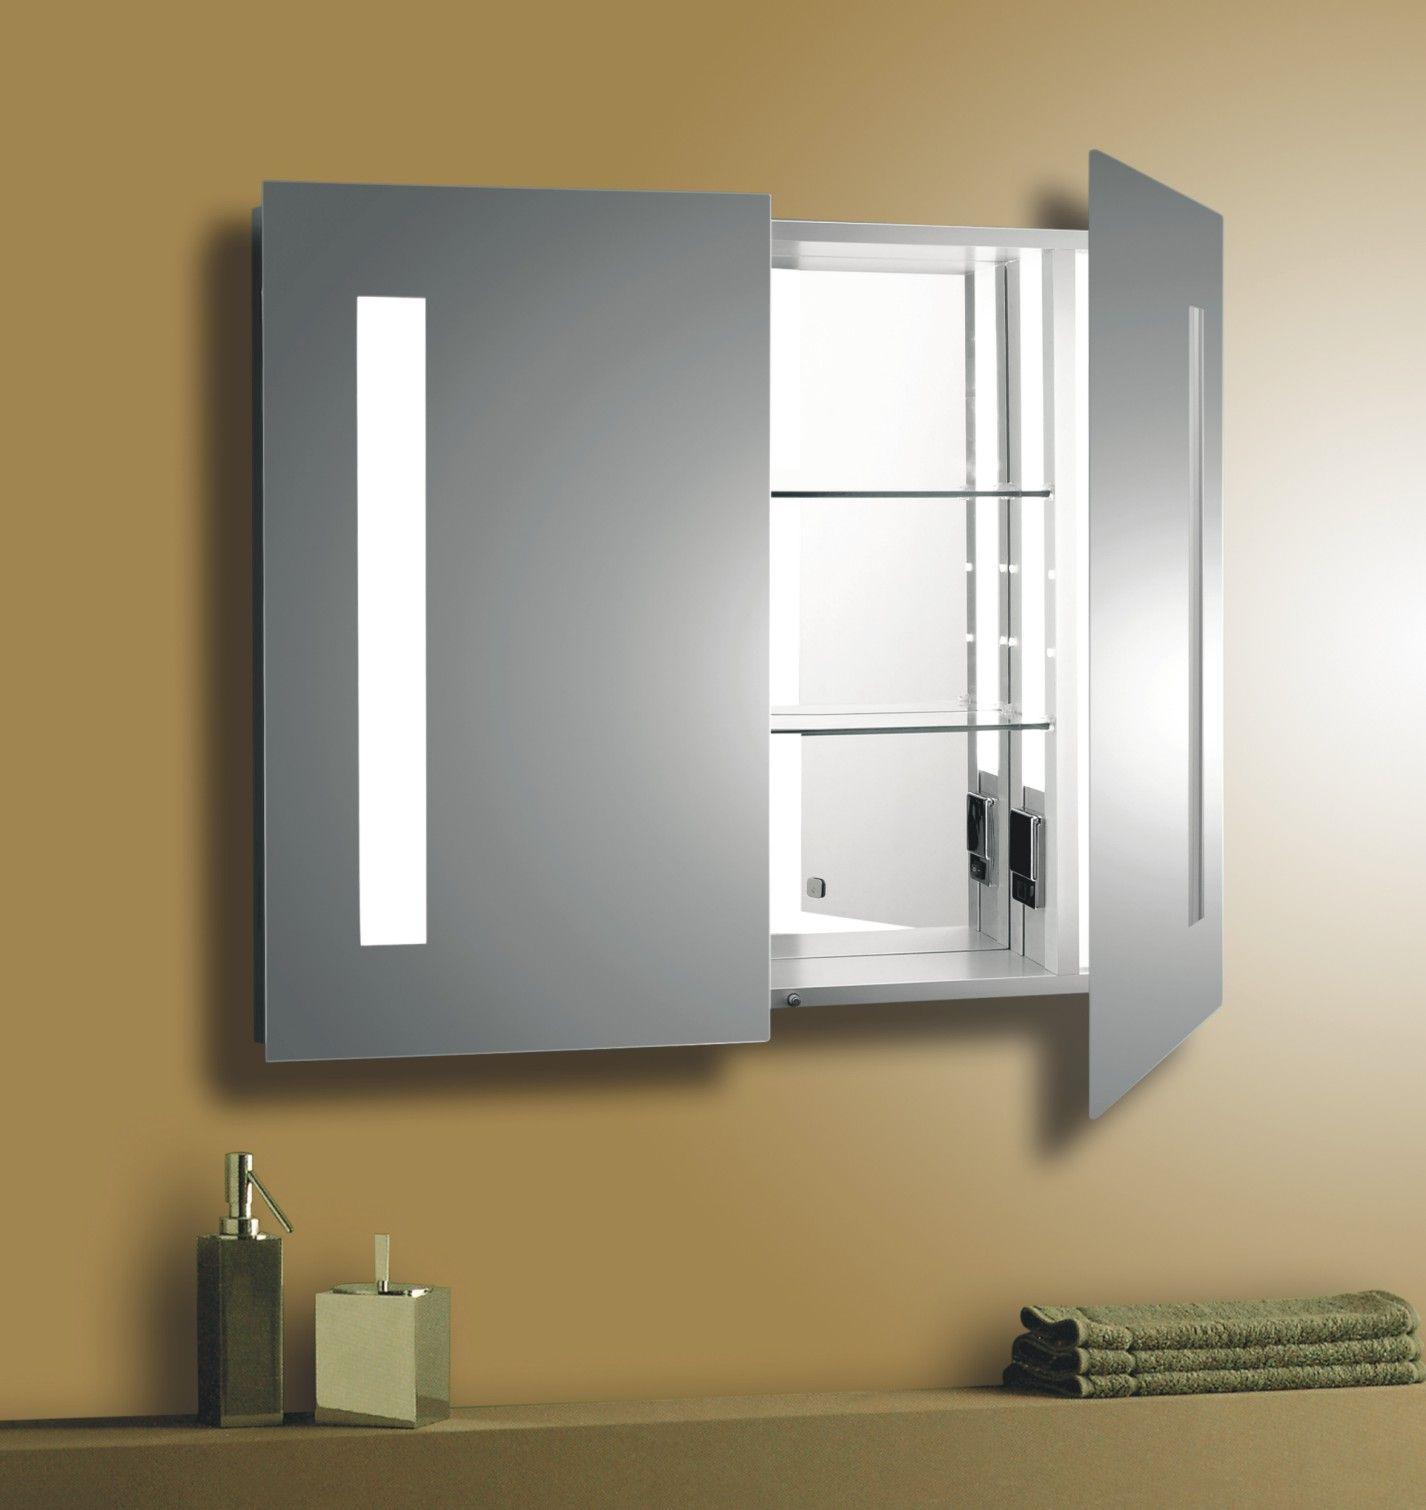 Bathroom Mirrors And Lighting Cool Oak Medicine Cabinet With Mirror And Lights And